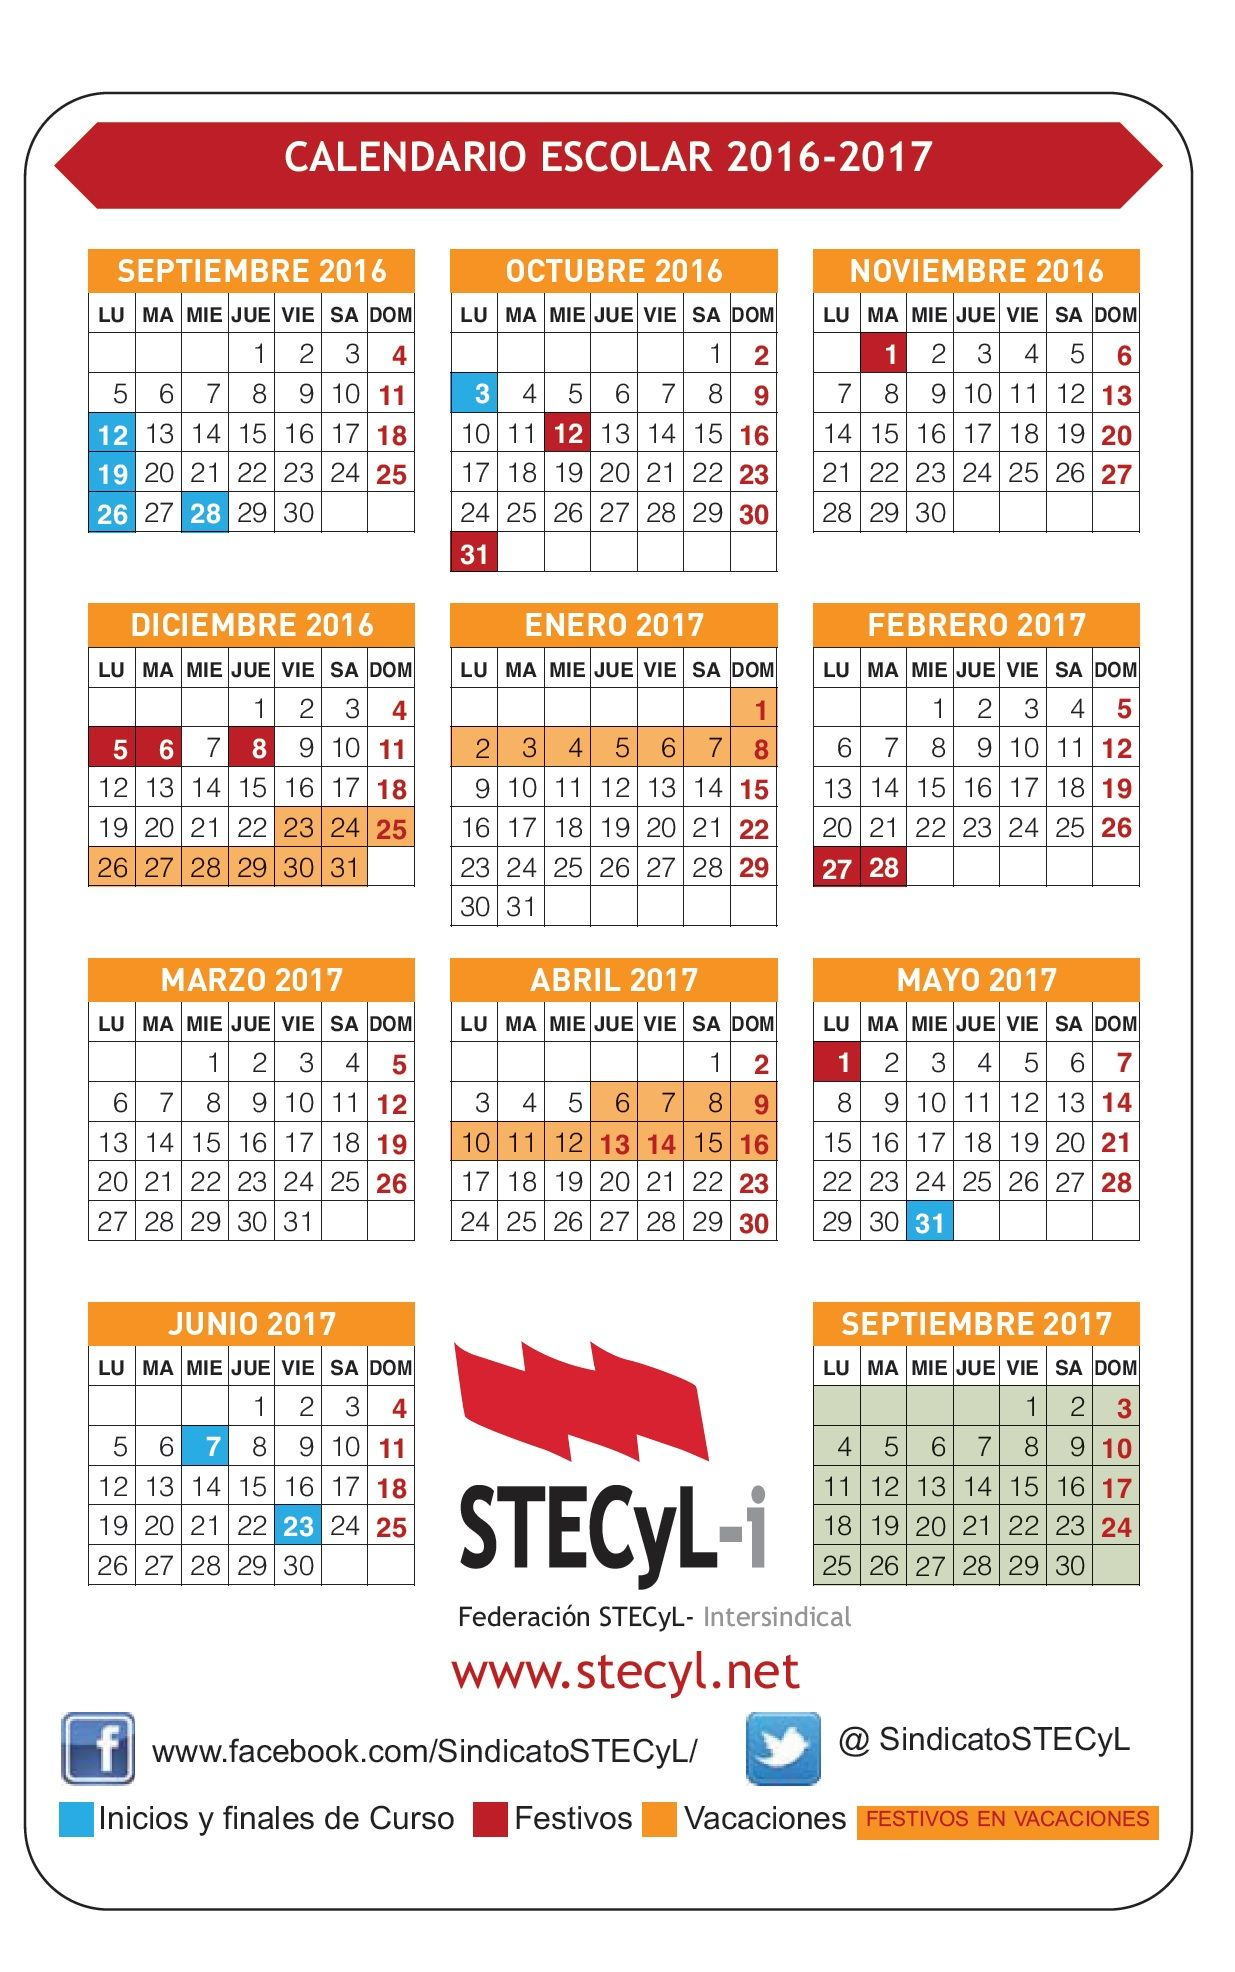 Calendario Escolar 2016 17 Enseñanzas No Universitarias Cyl Stecyl I